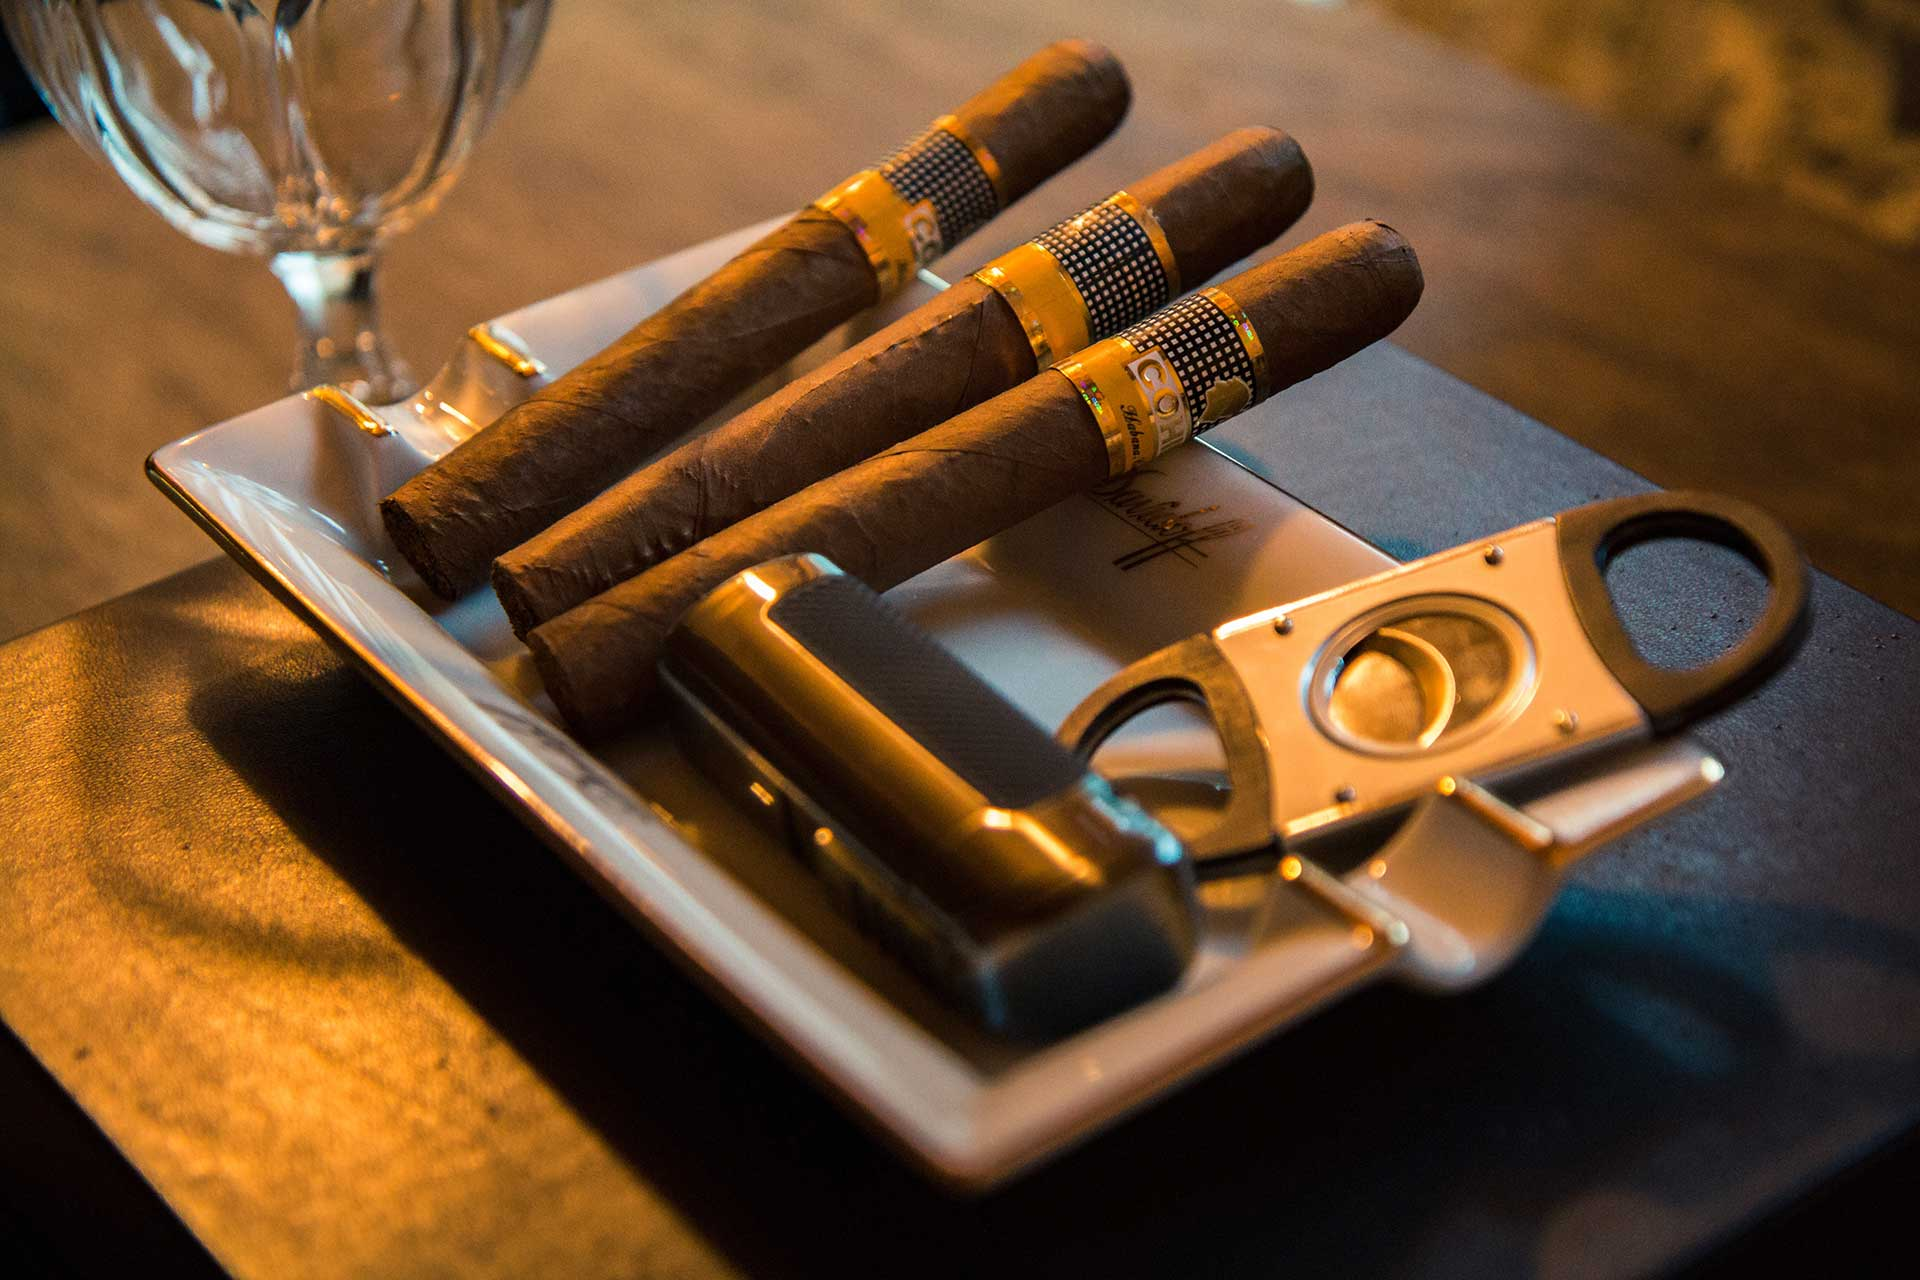 a cigar tray with three cigars and a cigar cutter